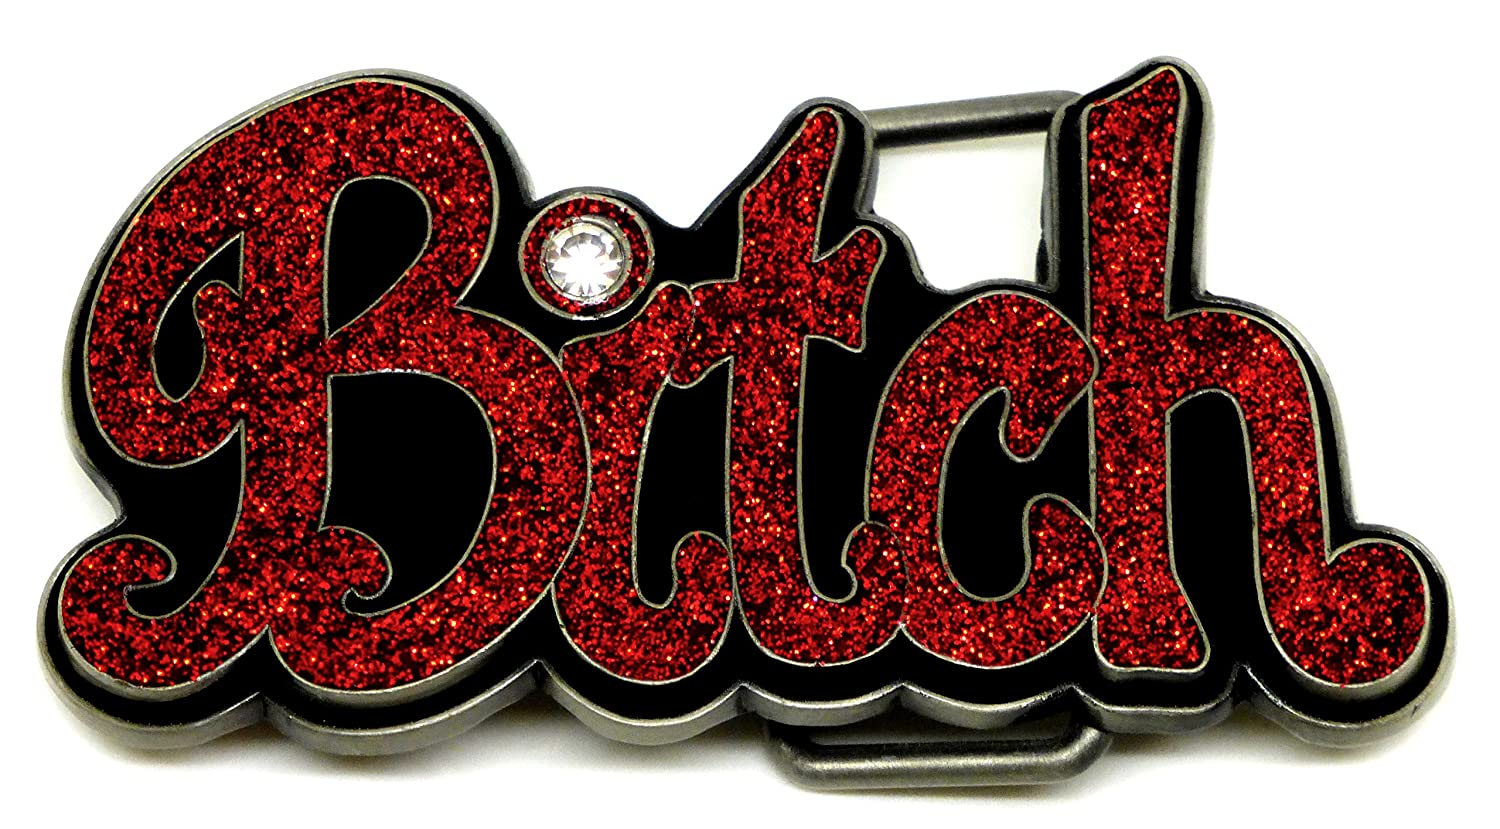 Bitch Belt Buckle 3D Red Coloured With Glitter Design Authentic Siskiyou Branded Product SK GB 19